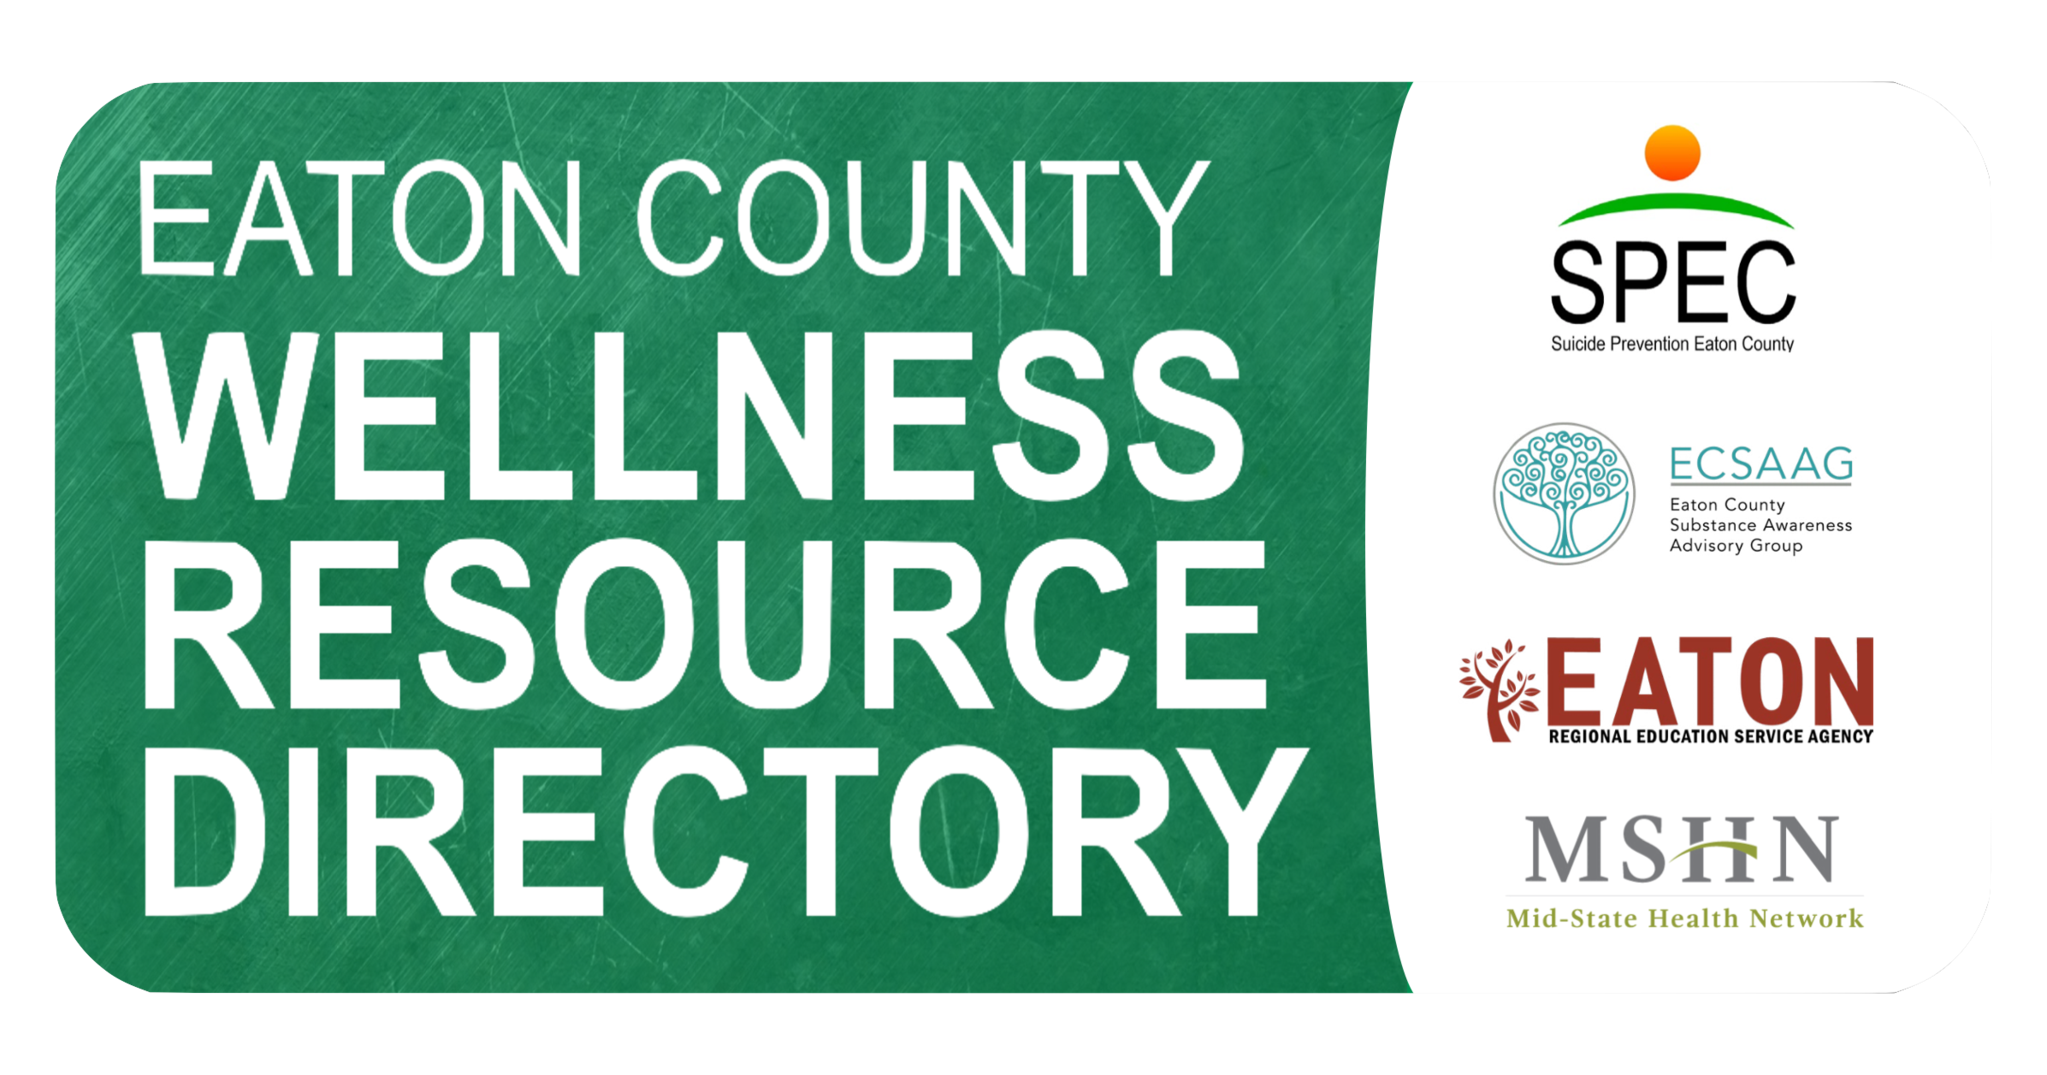 Eaton County Wellness Resource Directory